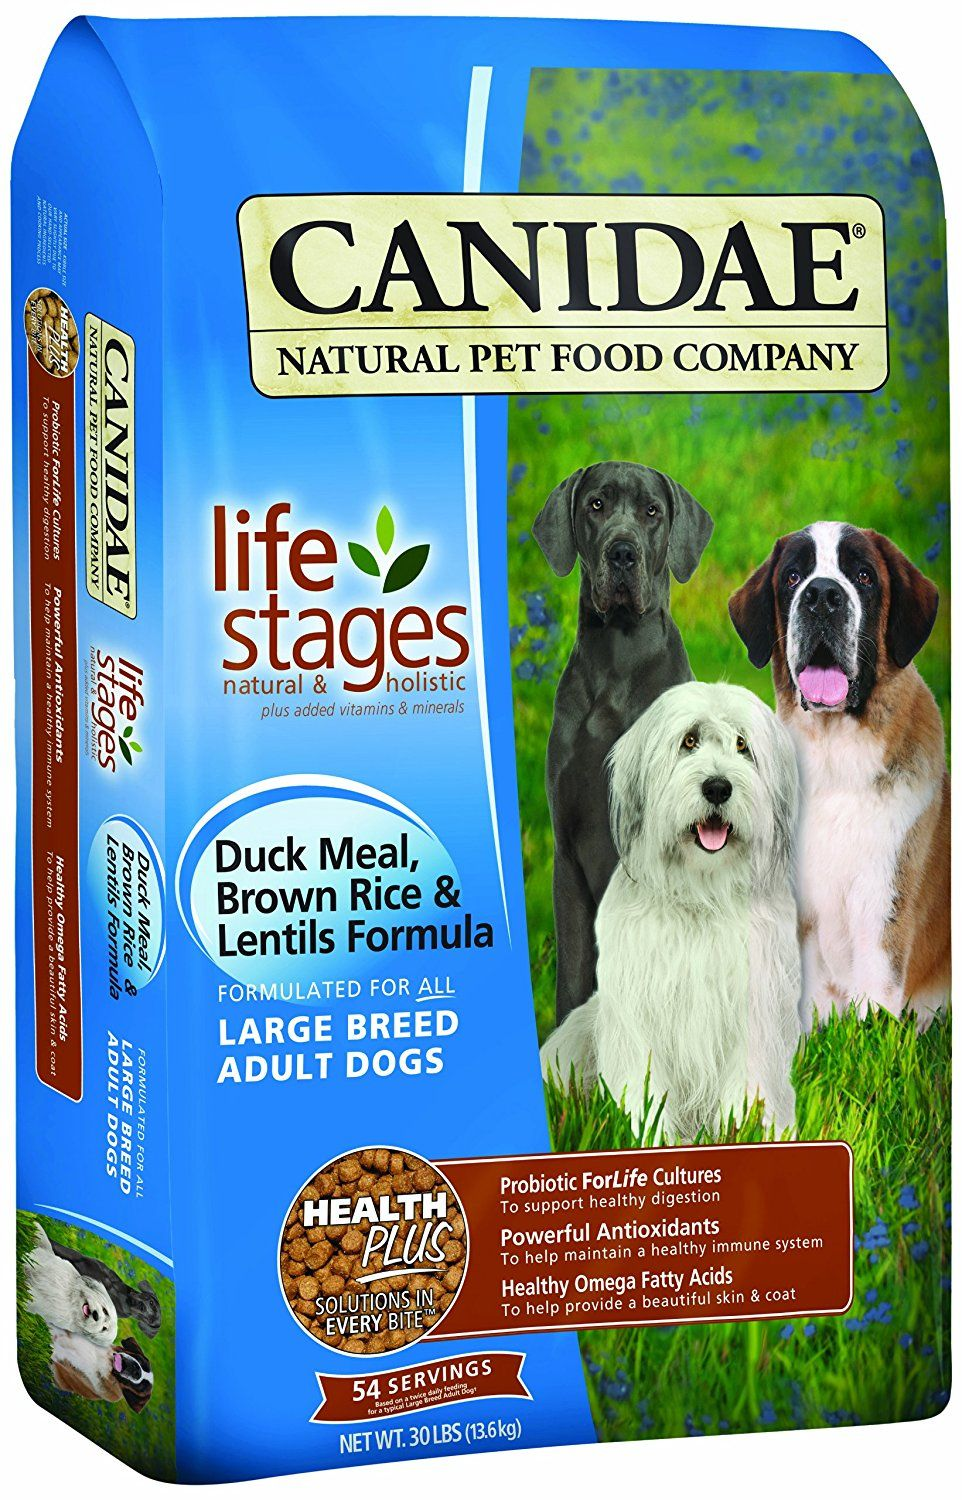 Canidae all life stages large breed adult dog food made